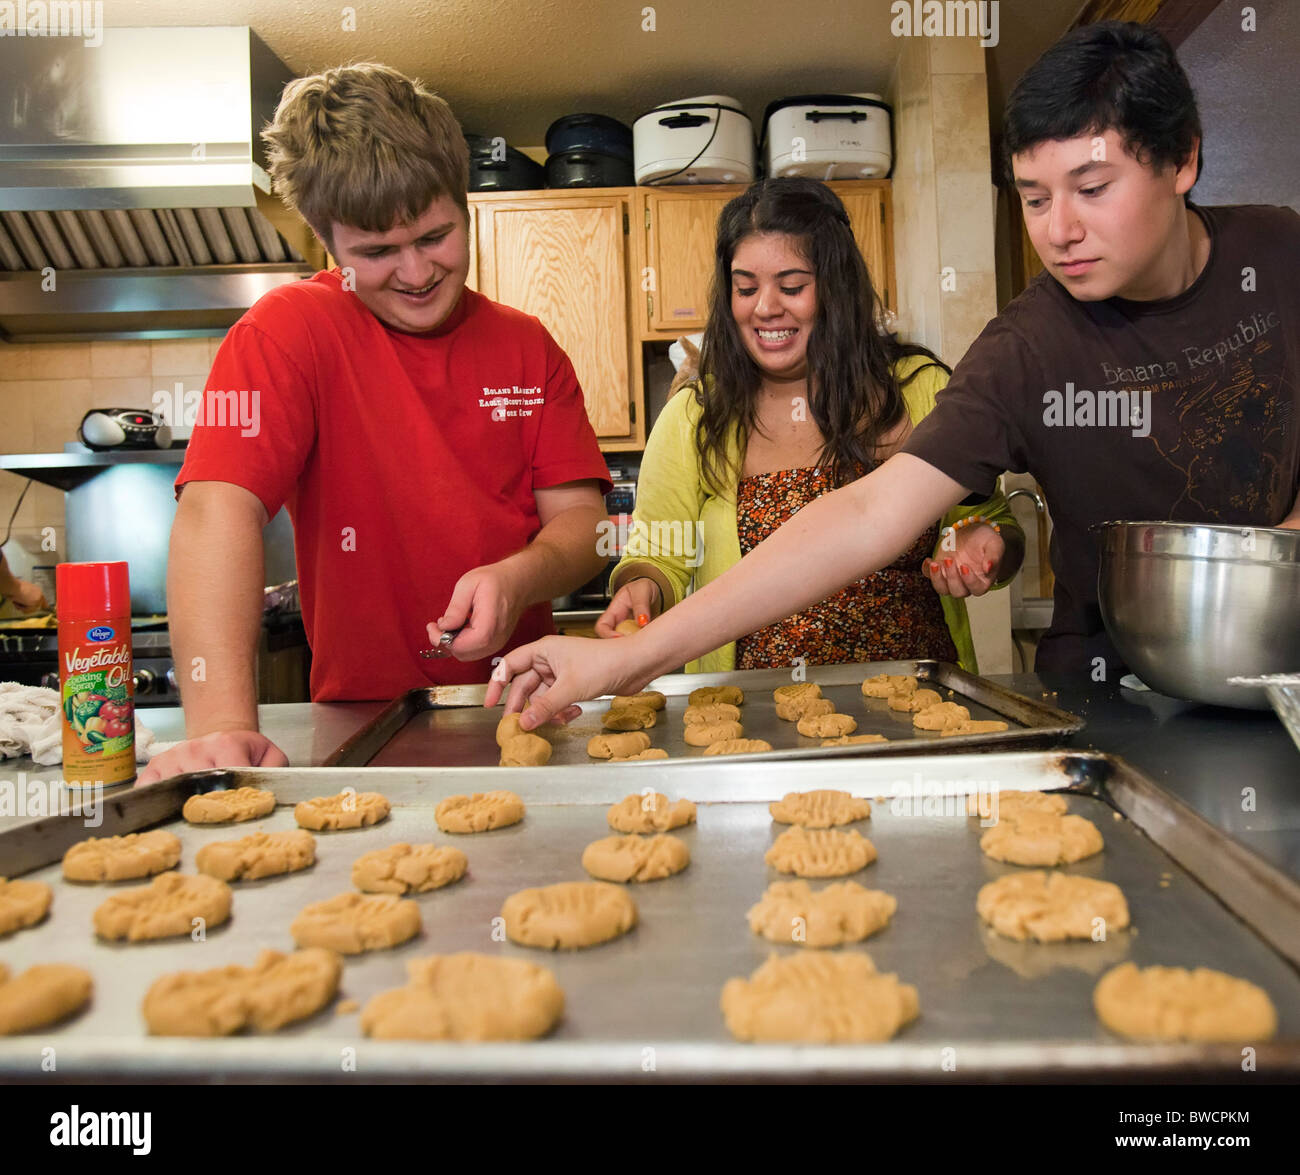 Soup Kitchen Knoxville: Homeless Teenager United States Stock Photos & Homeless